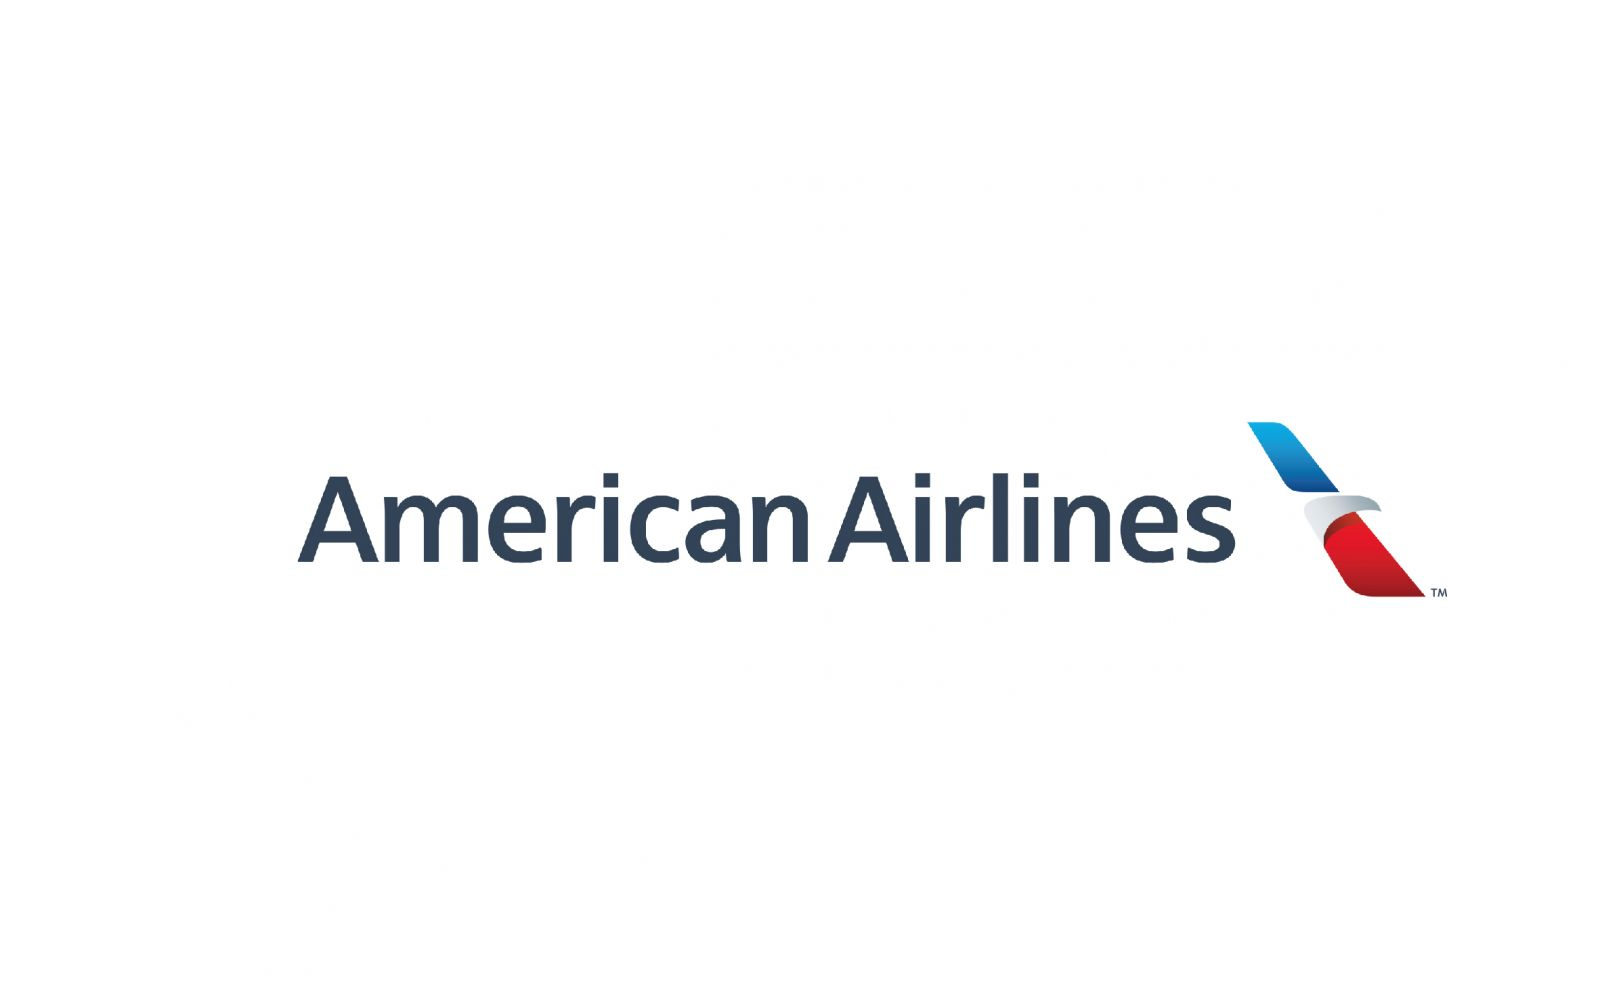 American Airlines re-appoints ICTS Europe as top security partner